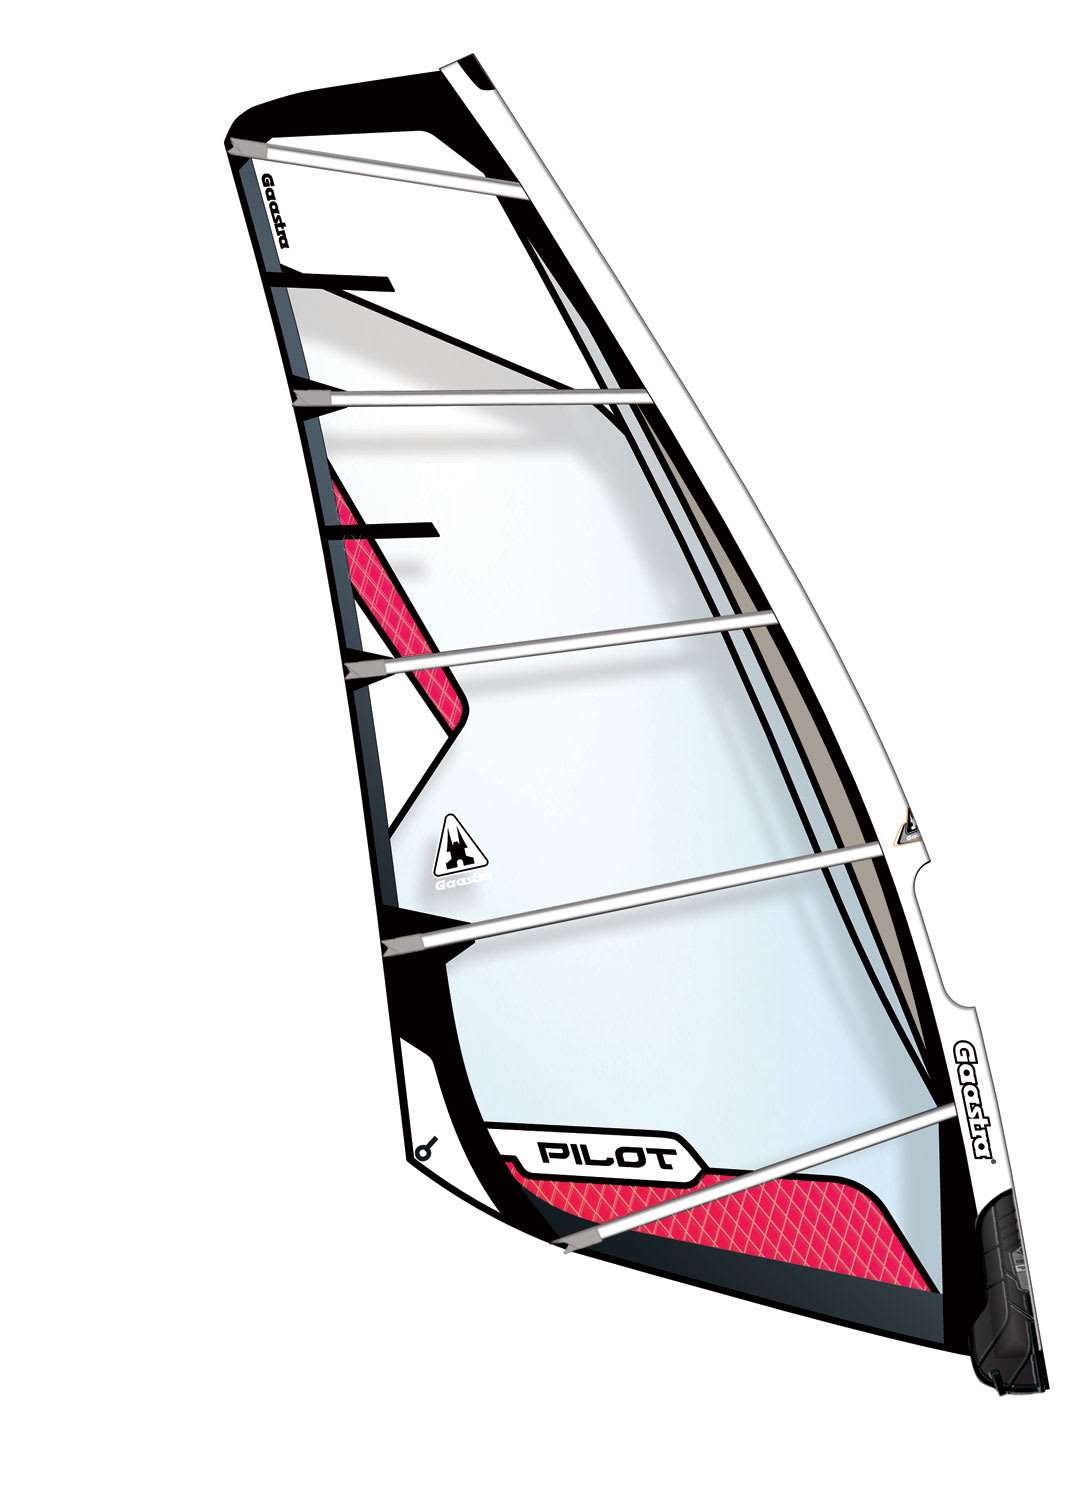 on sale gaastra pilot windsurfing sail 7 5 up to 75 off. Black Bedroom Furniture Sets. Home Design Ideas